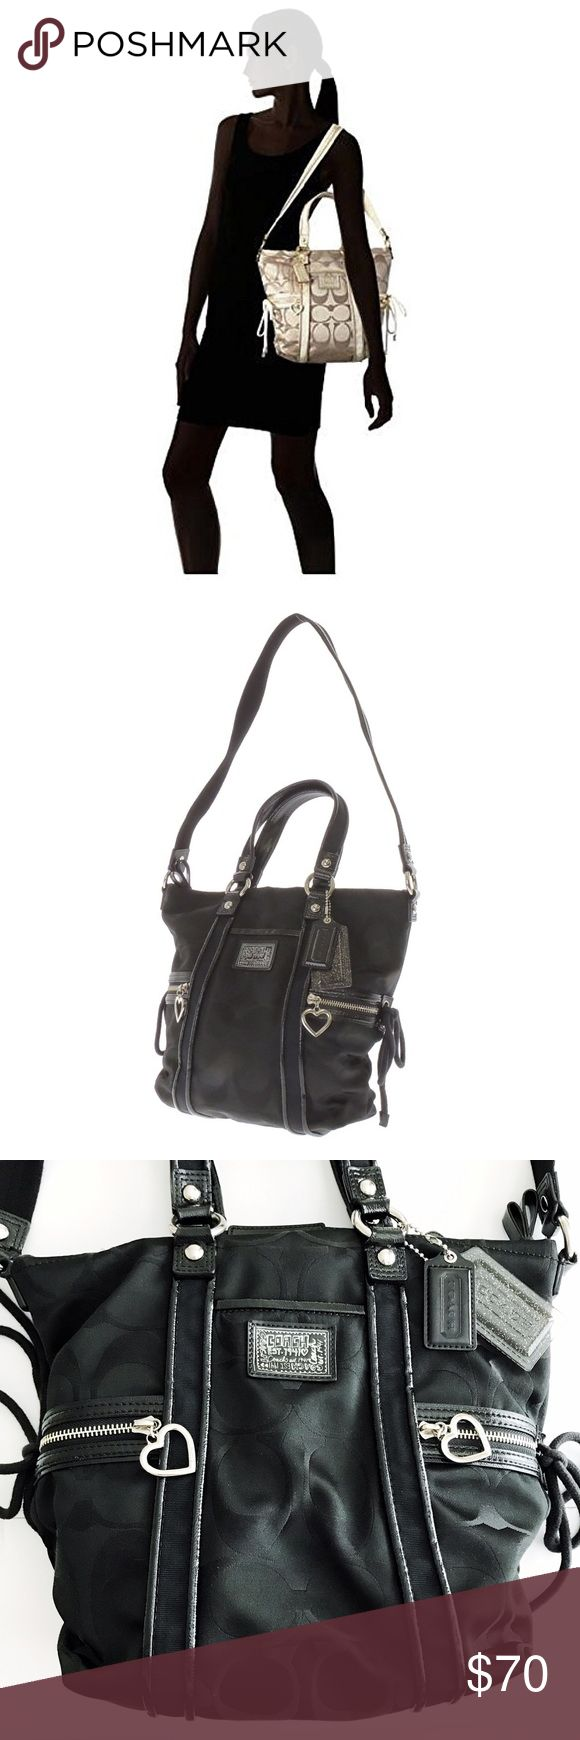 COACH Poppy Daisy Signature Pocket Tote Shoulder Pre-owned COACH Poppy Daisy Signature Pocket Tote Shoulder in BLACK. Authentic ✔️. Great condition!. Ebay sells this exact one, pre-owned for $89.99. Buy it here for better deal and quality. Coach Bags Shoulder Bags